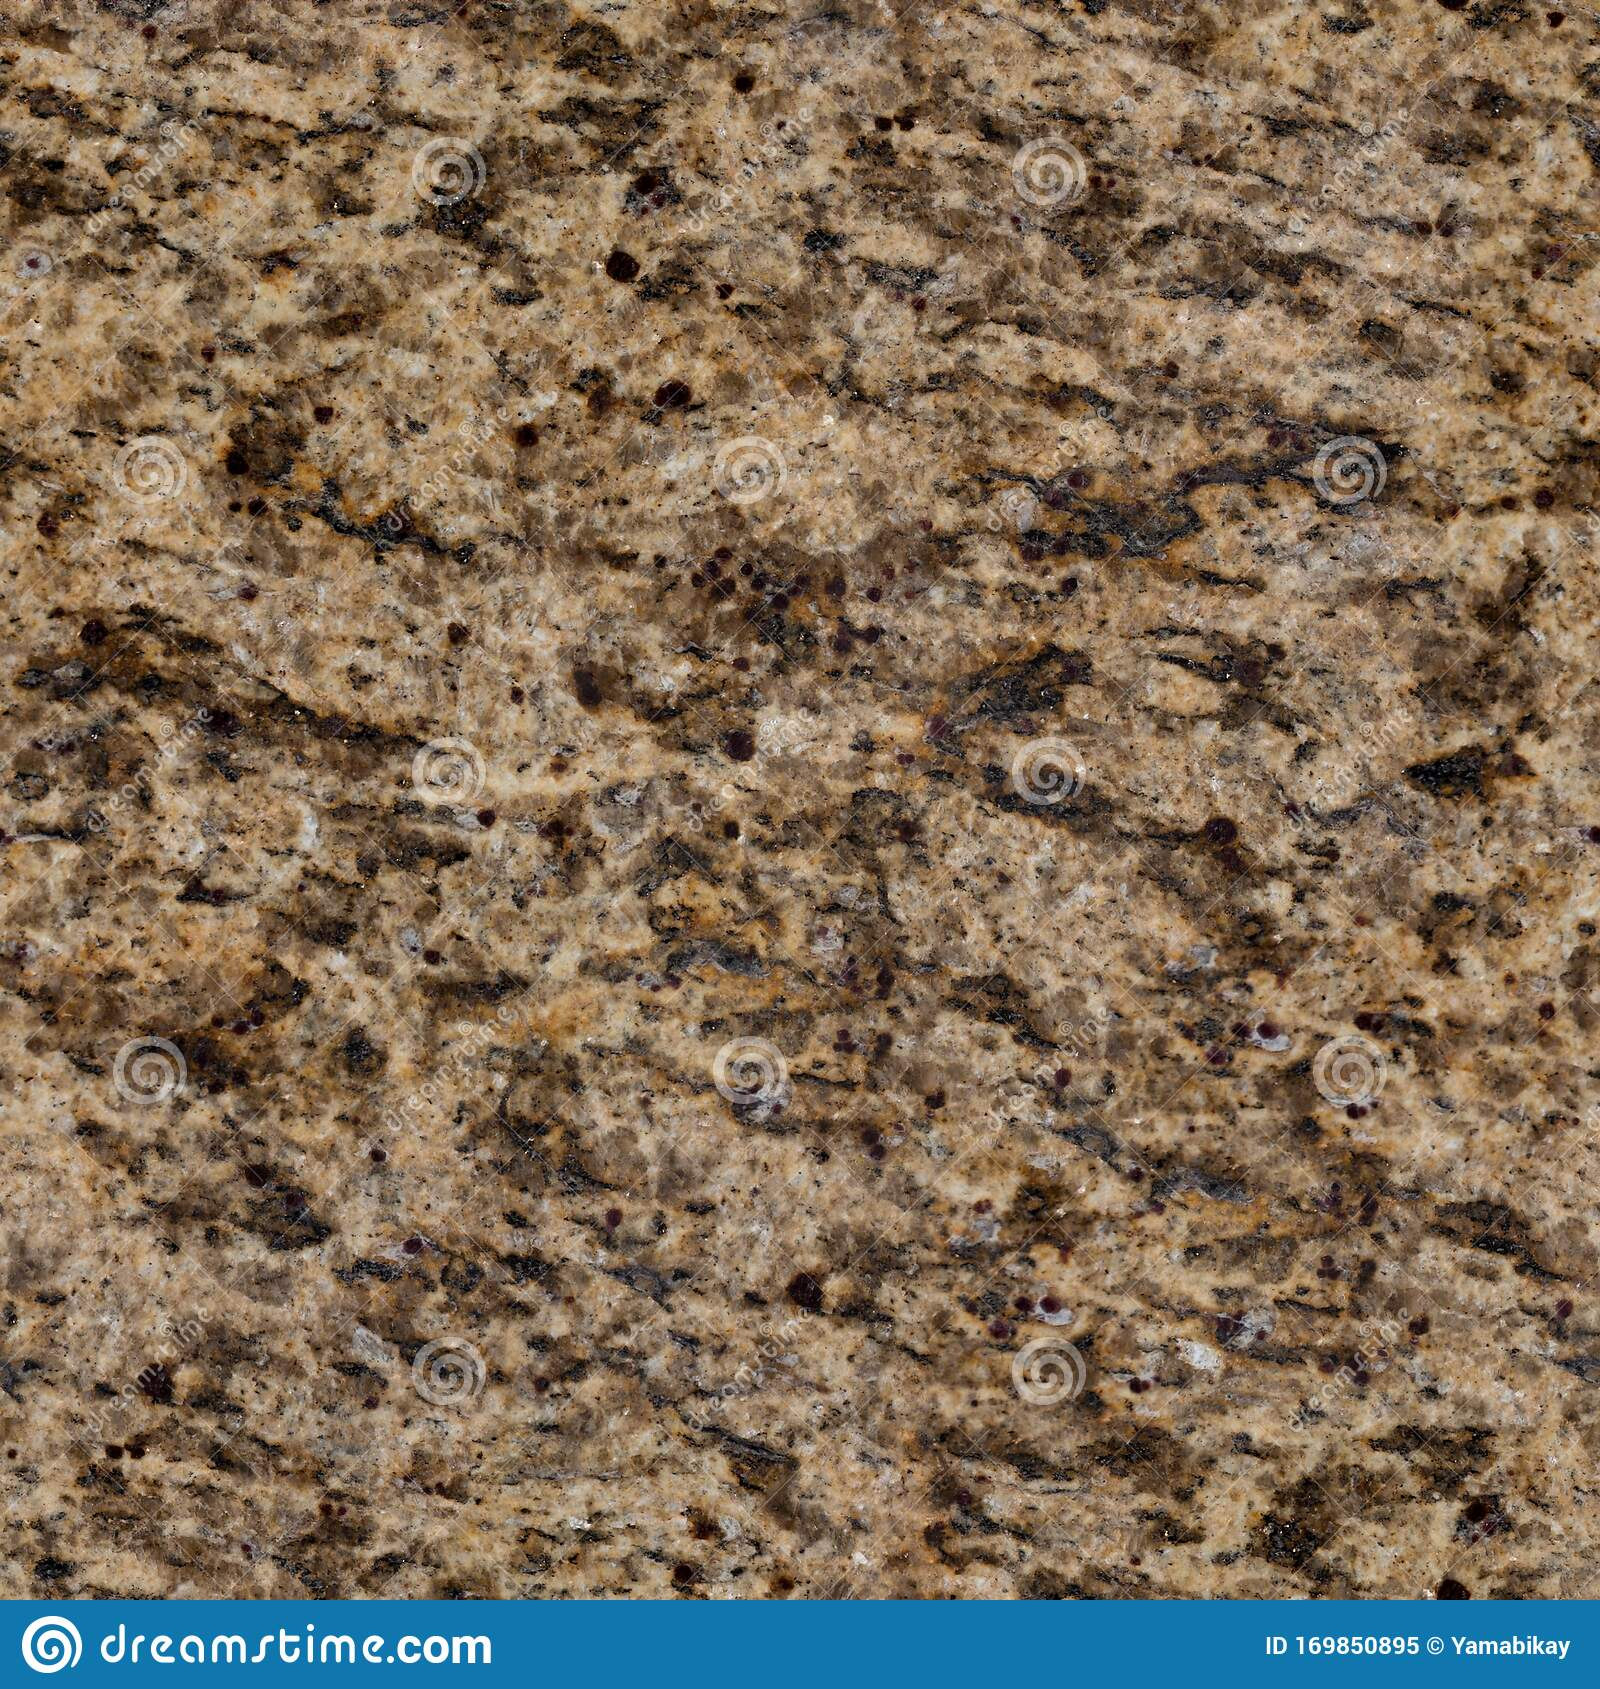 Contrast Light Brown Granite Texture With Pattern Seamless Square Background Tile Ready Stock Image Image Of Decorative Element 169850895